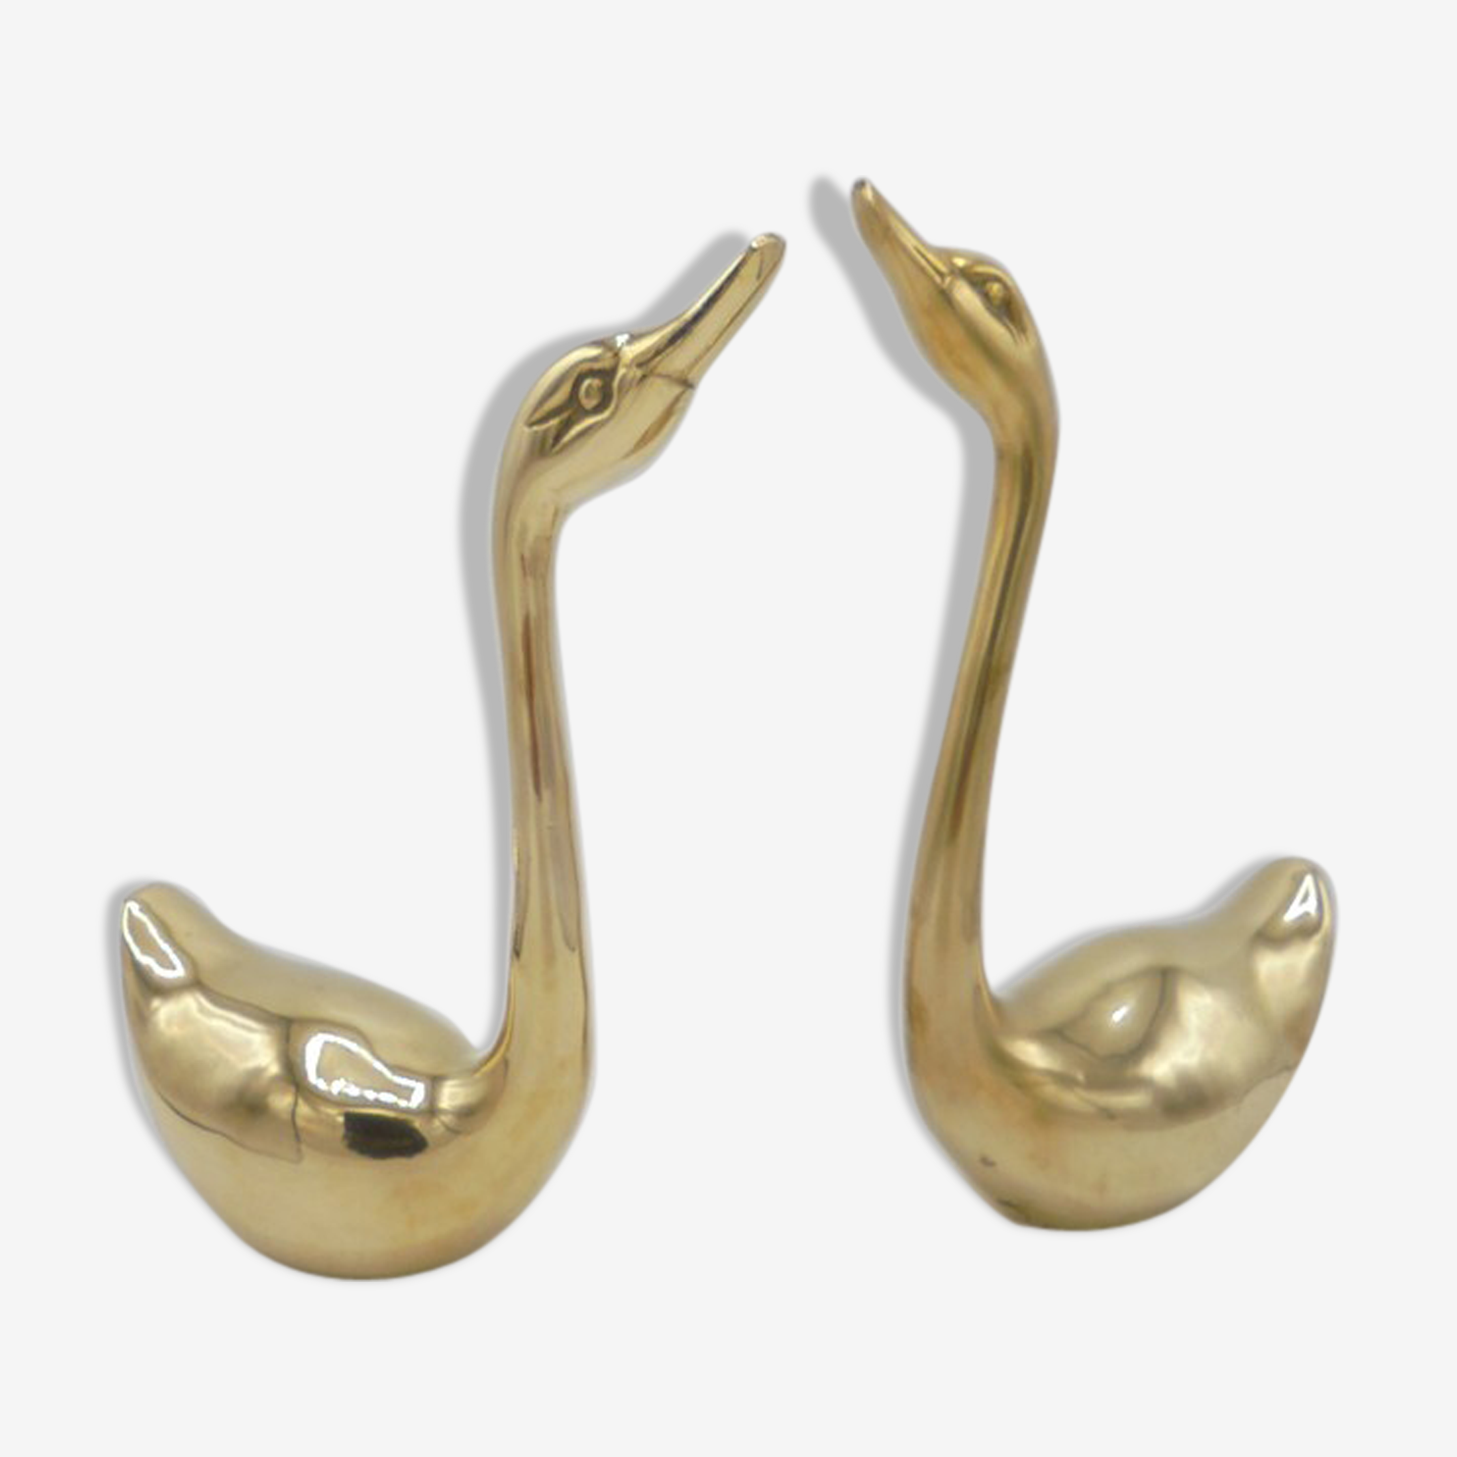 Swans brass duo